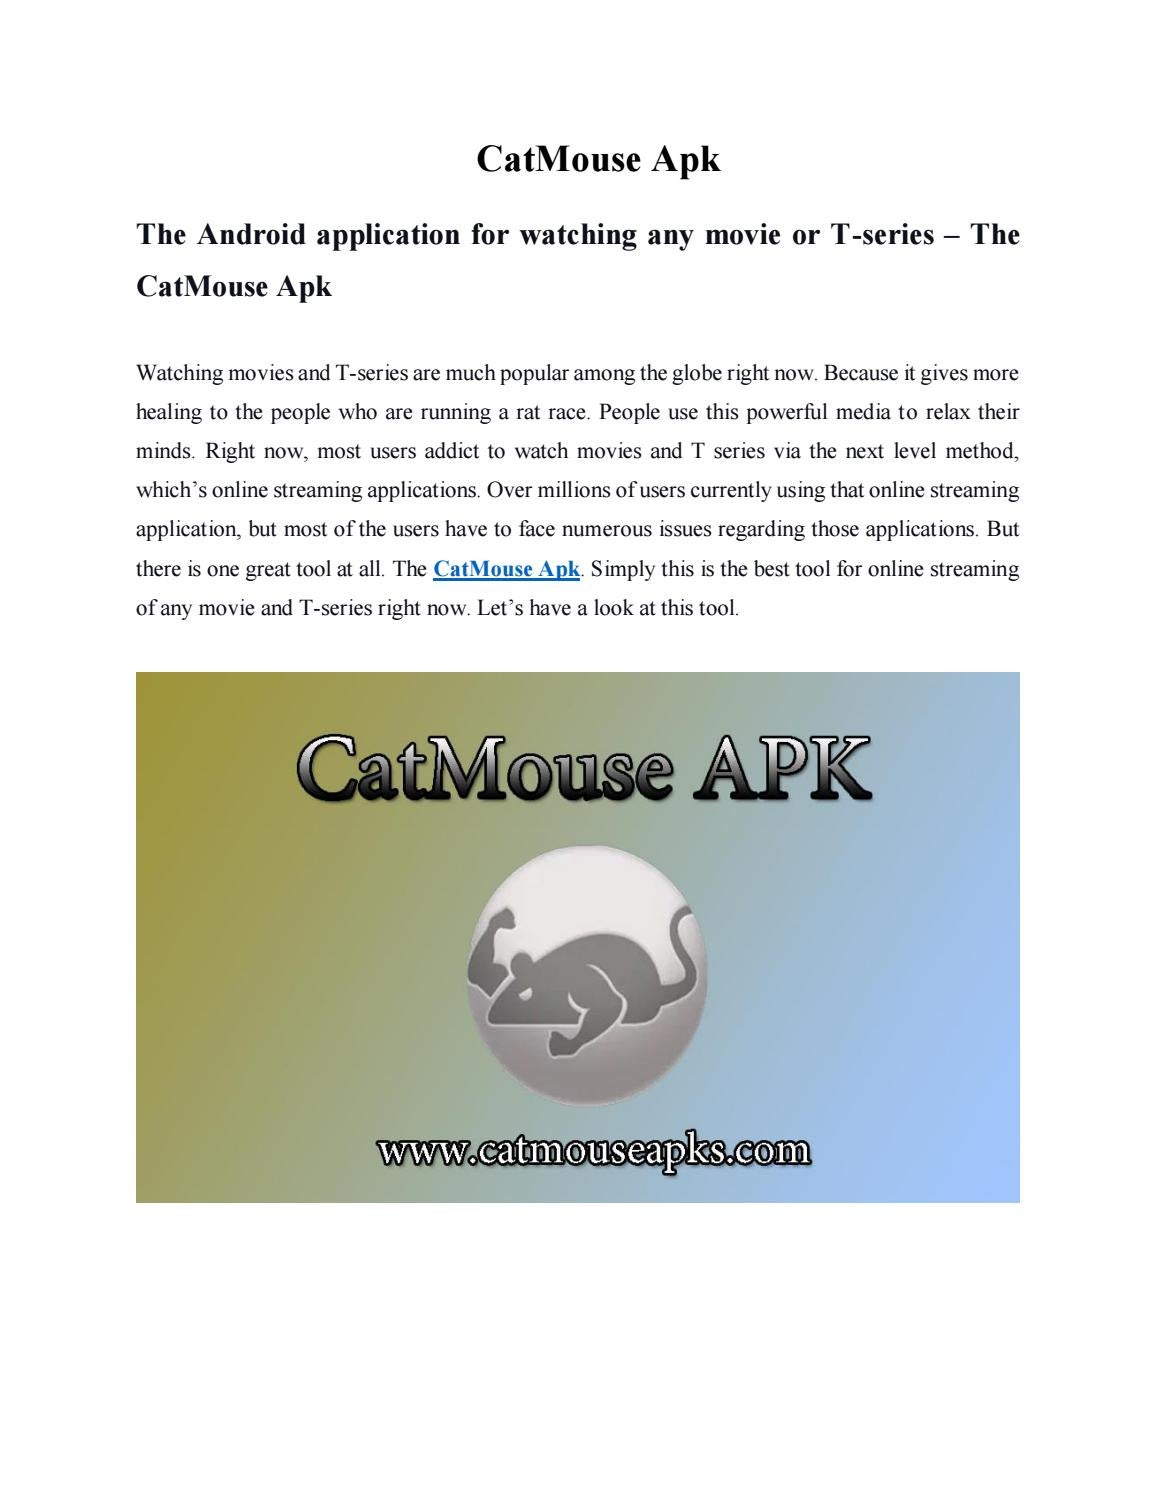 Catmouse Apk The Official Catmouse Apk Download By Catmouse Apk Issuu